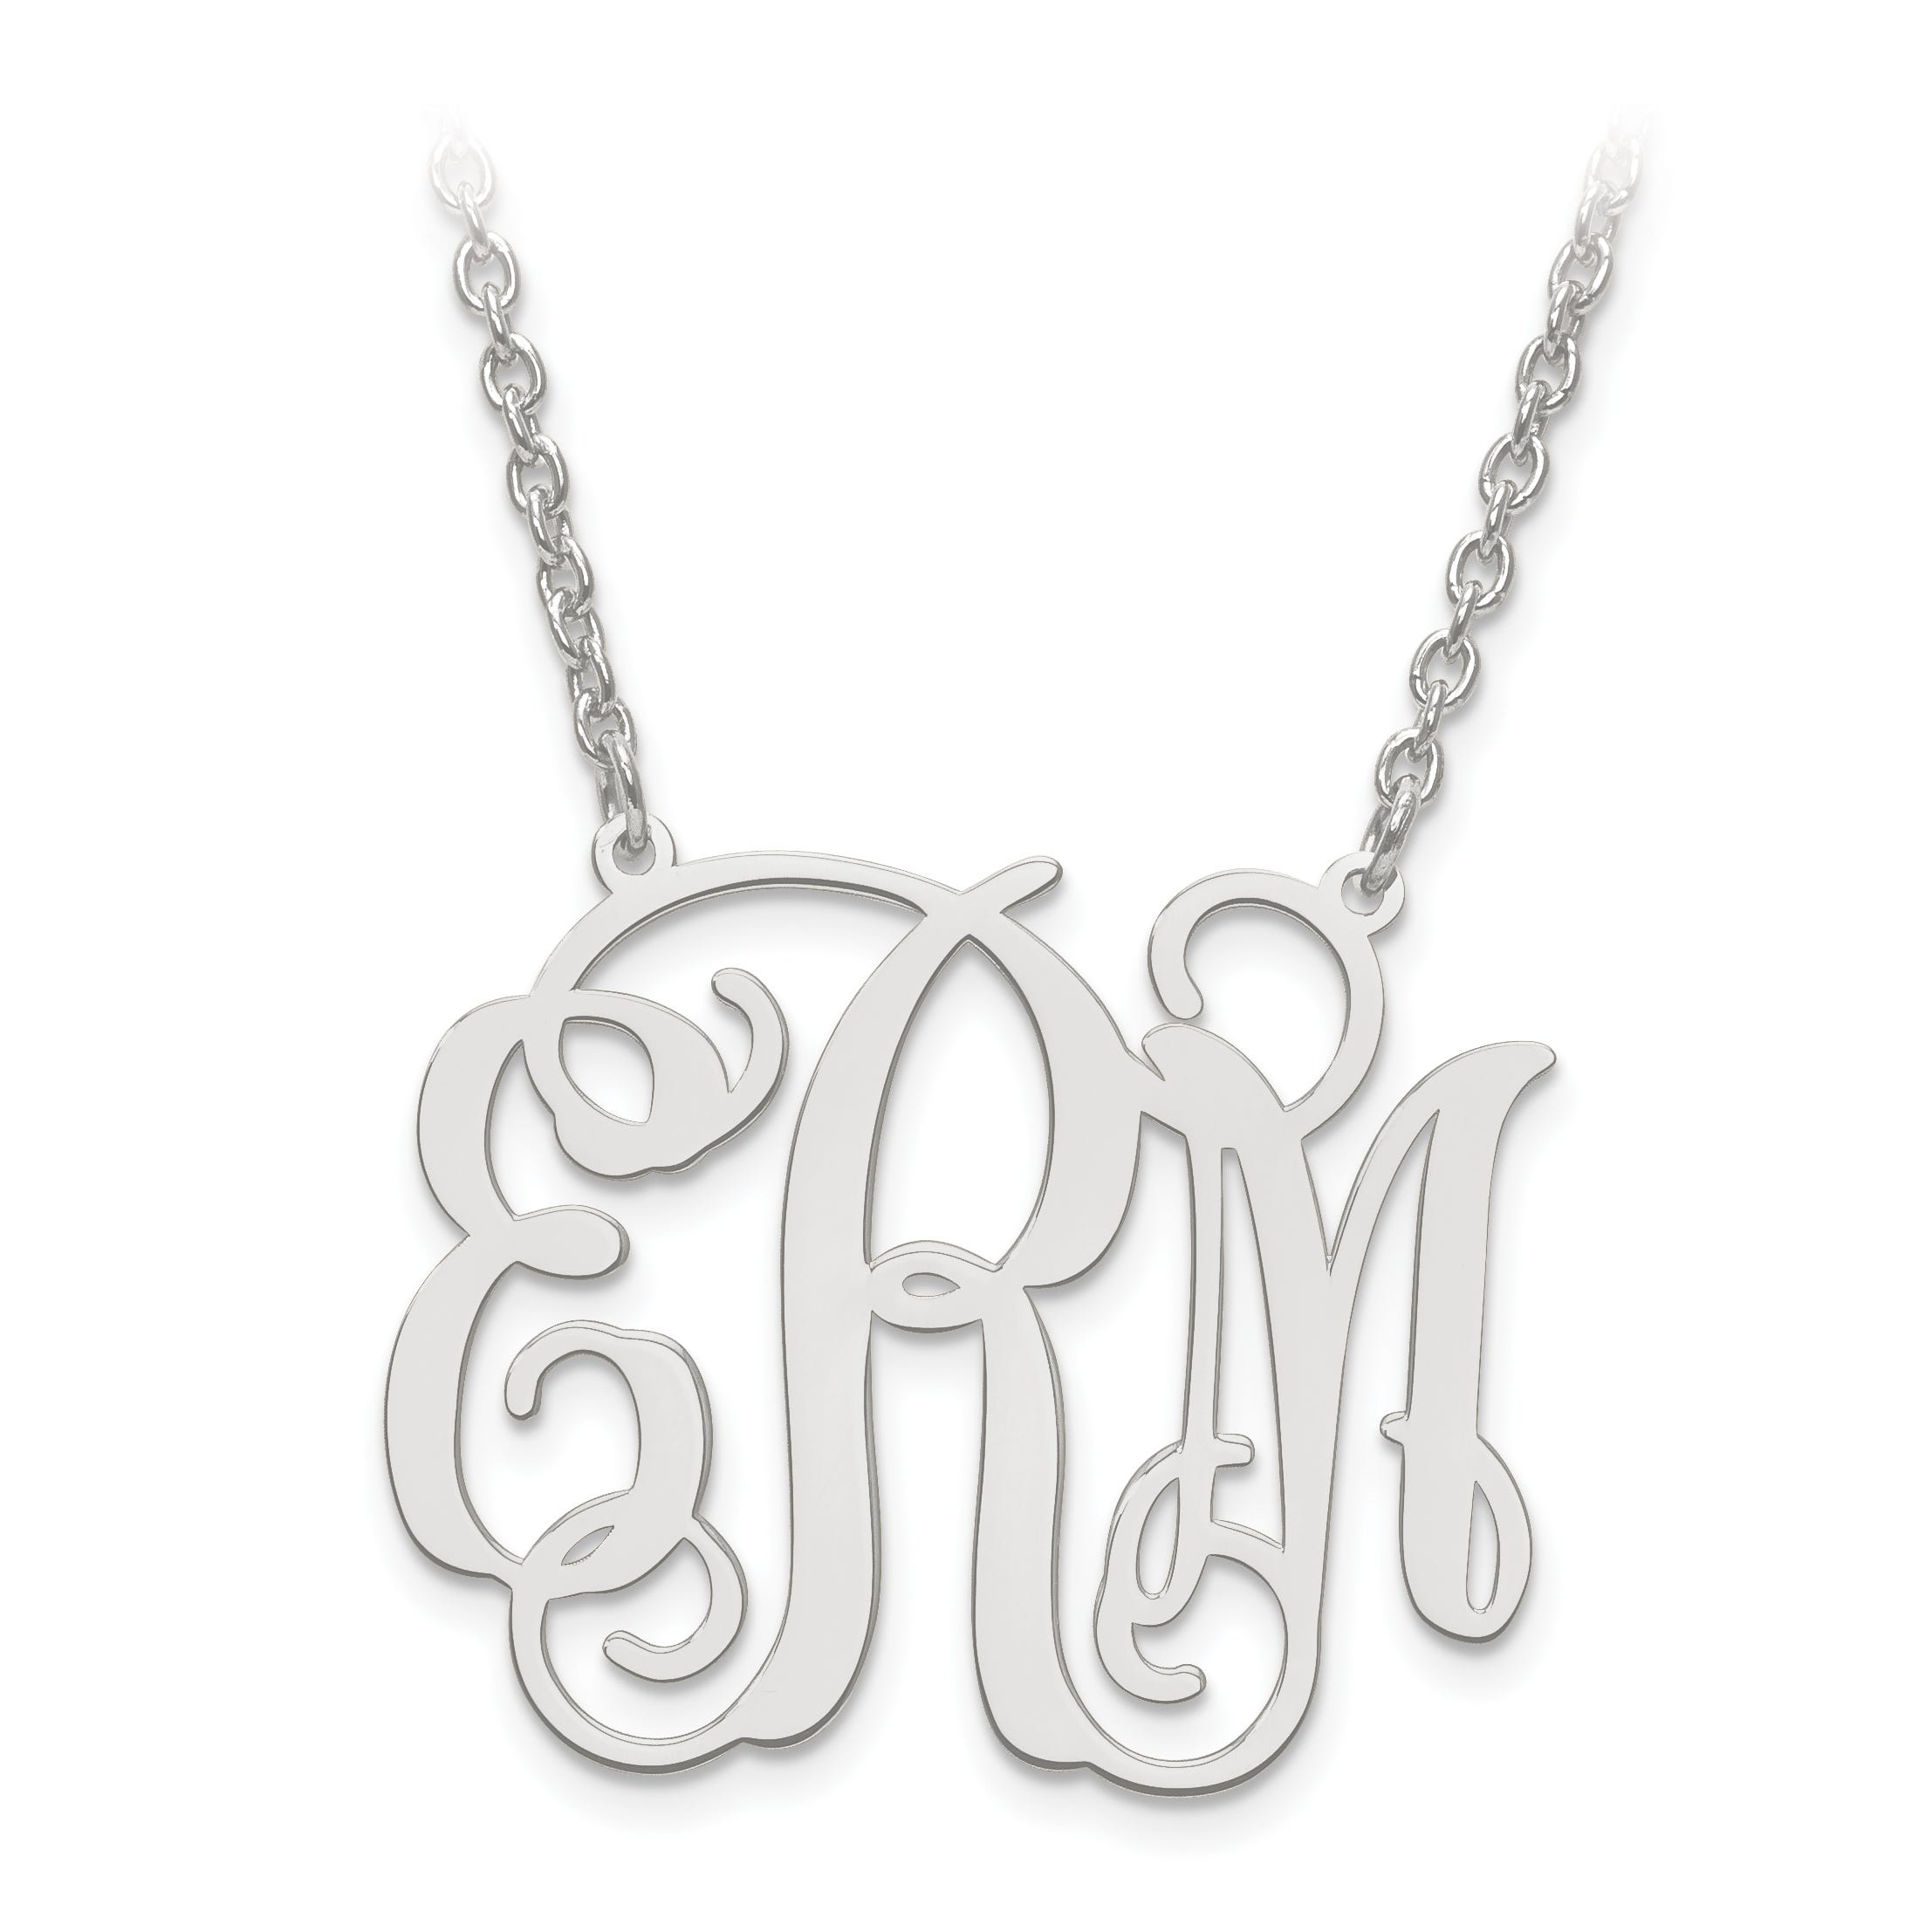 Laser Polished 29x36 Monogram Plate in Sterling Silver (up to 3 letters)